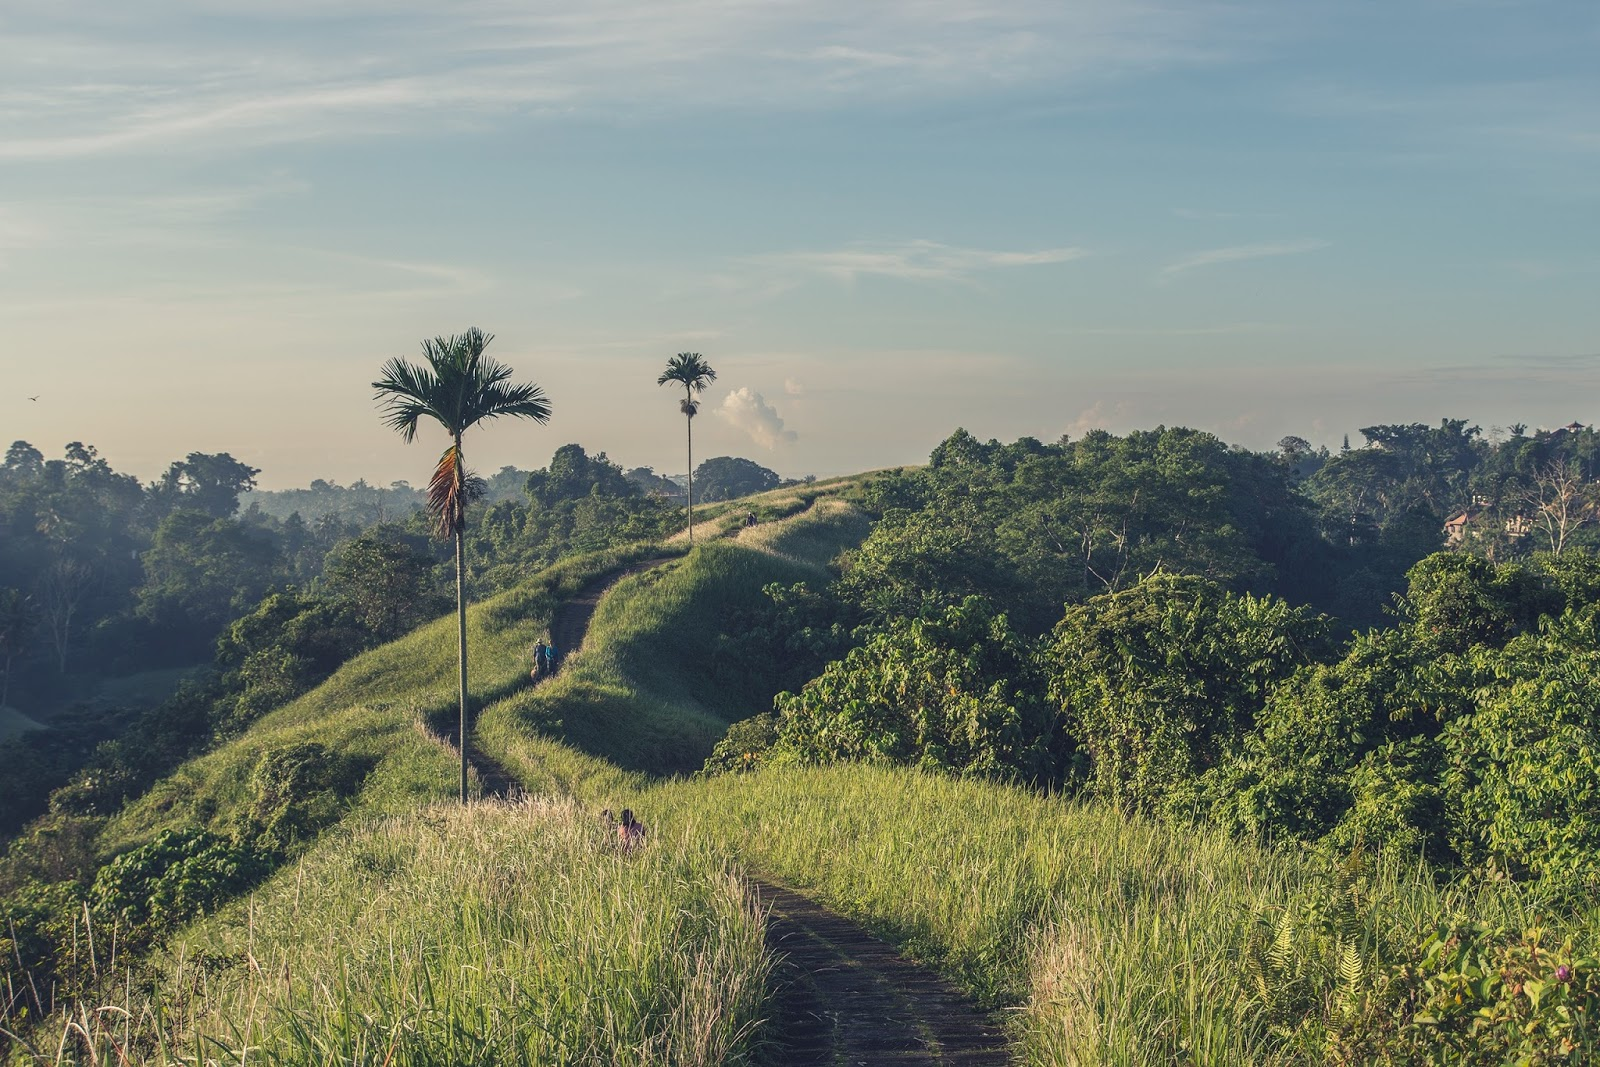 Hiking in Bali